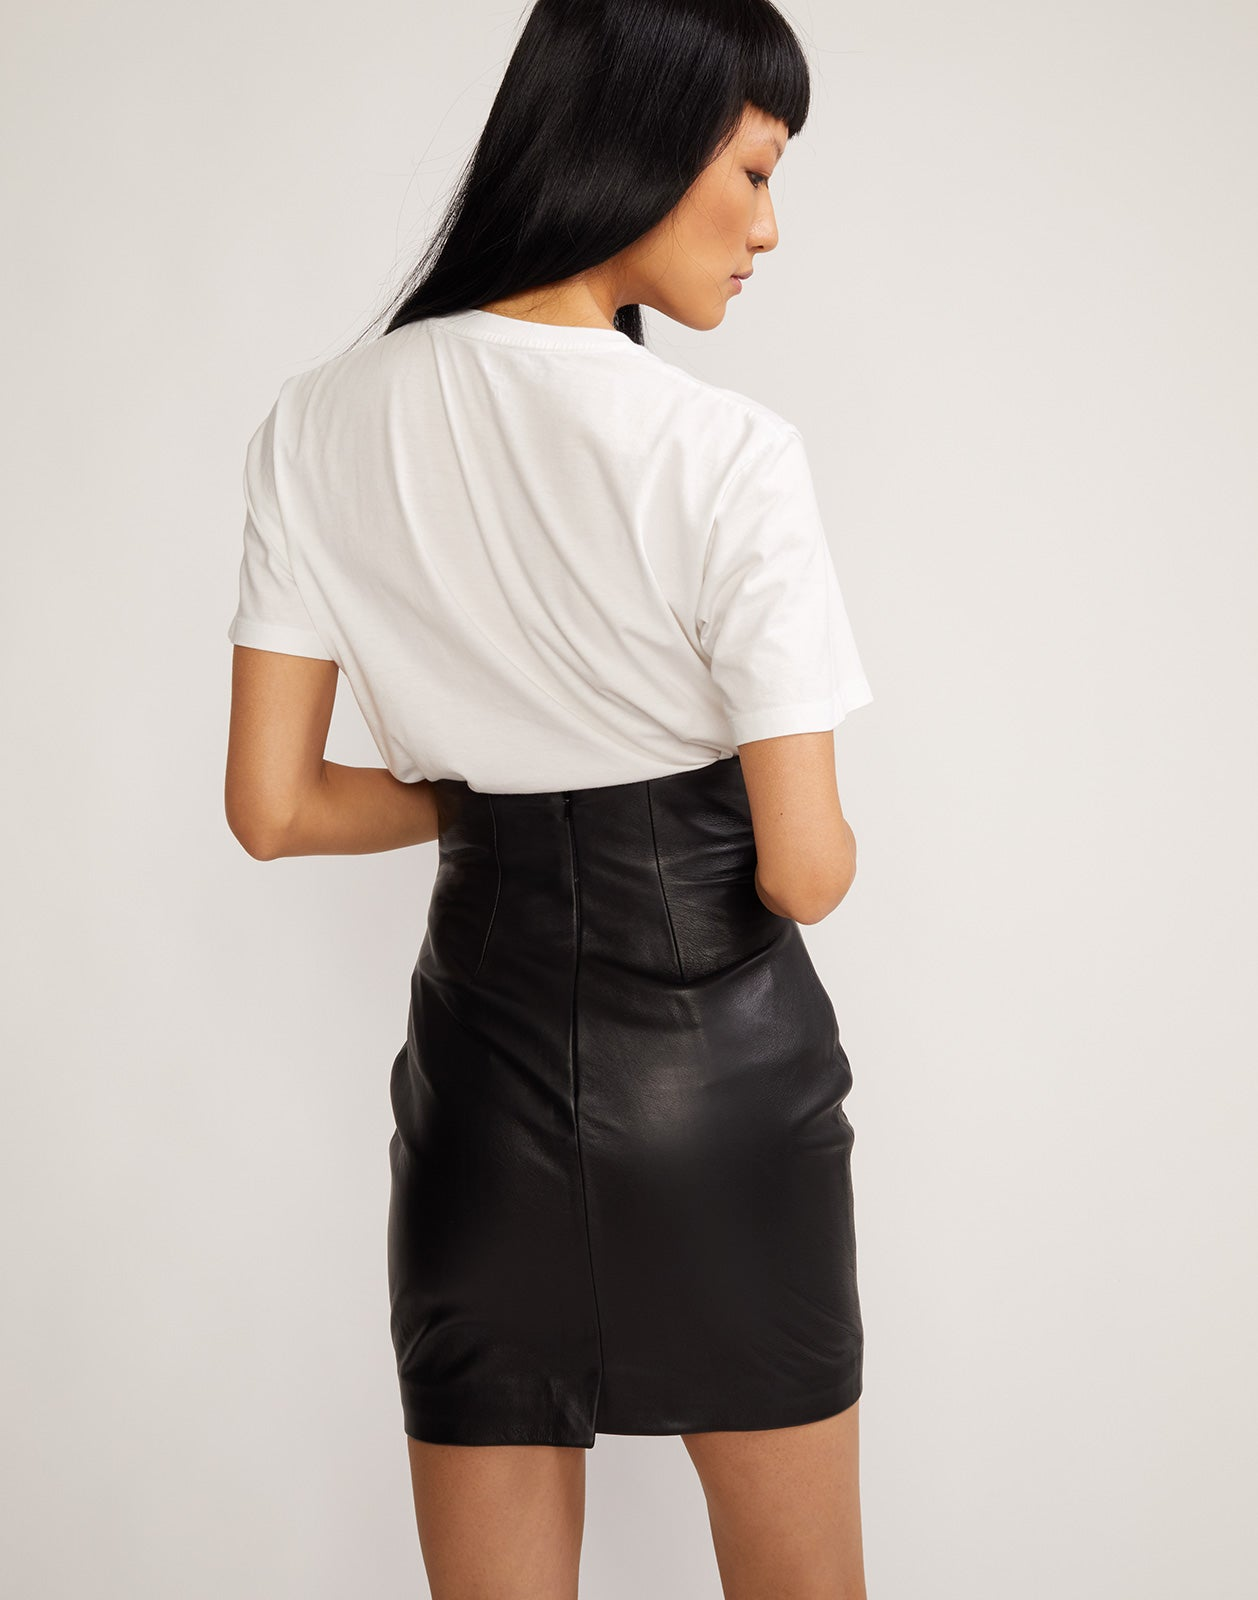 Back view of leather skirt with lace up front at waist.